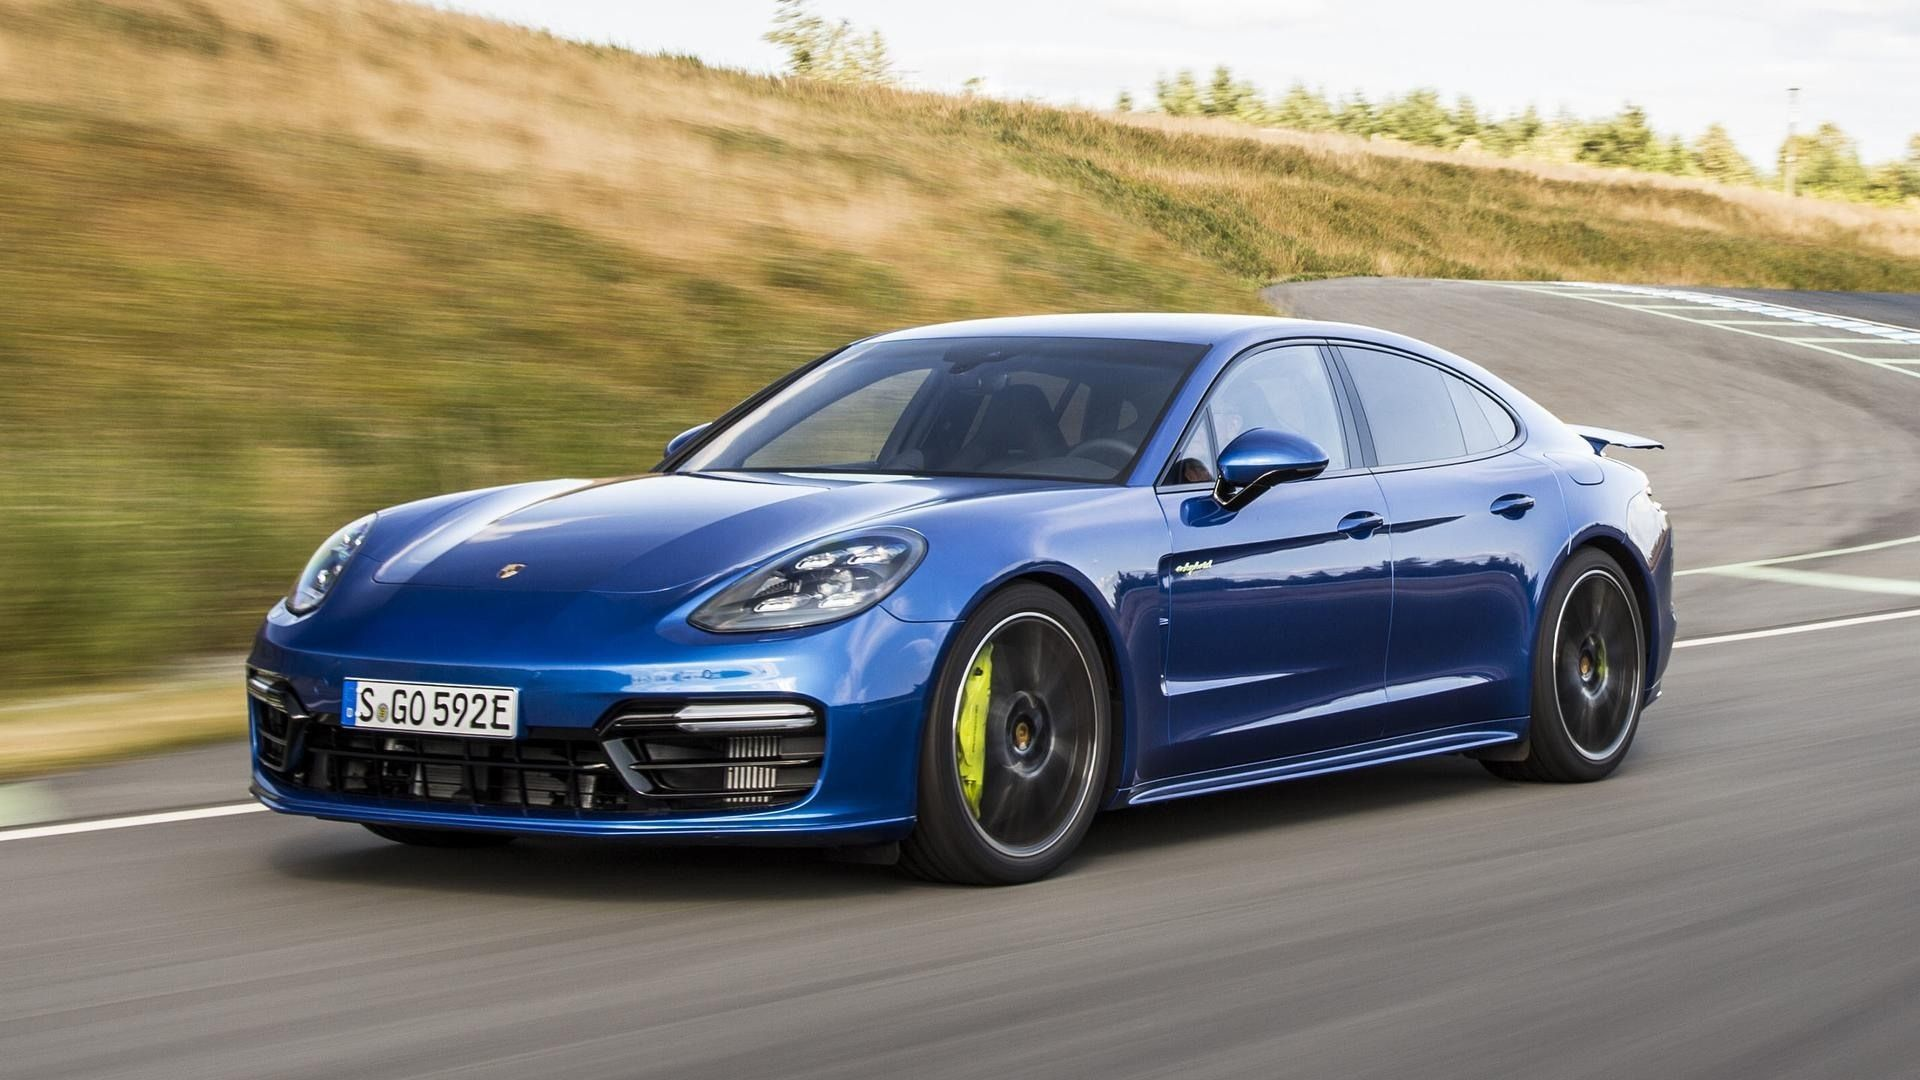 2019 Porsche Panamera Turbo S Specs And Review Panamera Turbo S Porsche Panamera Porsche Panamera Turbo